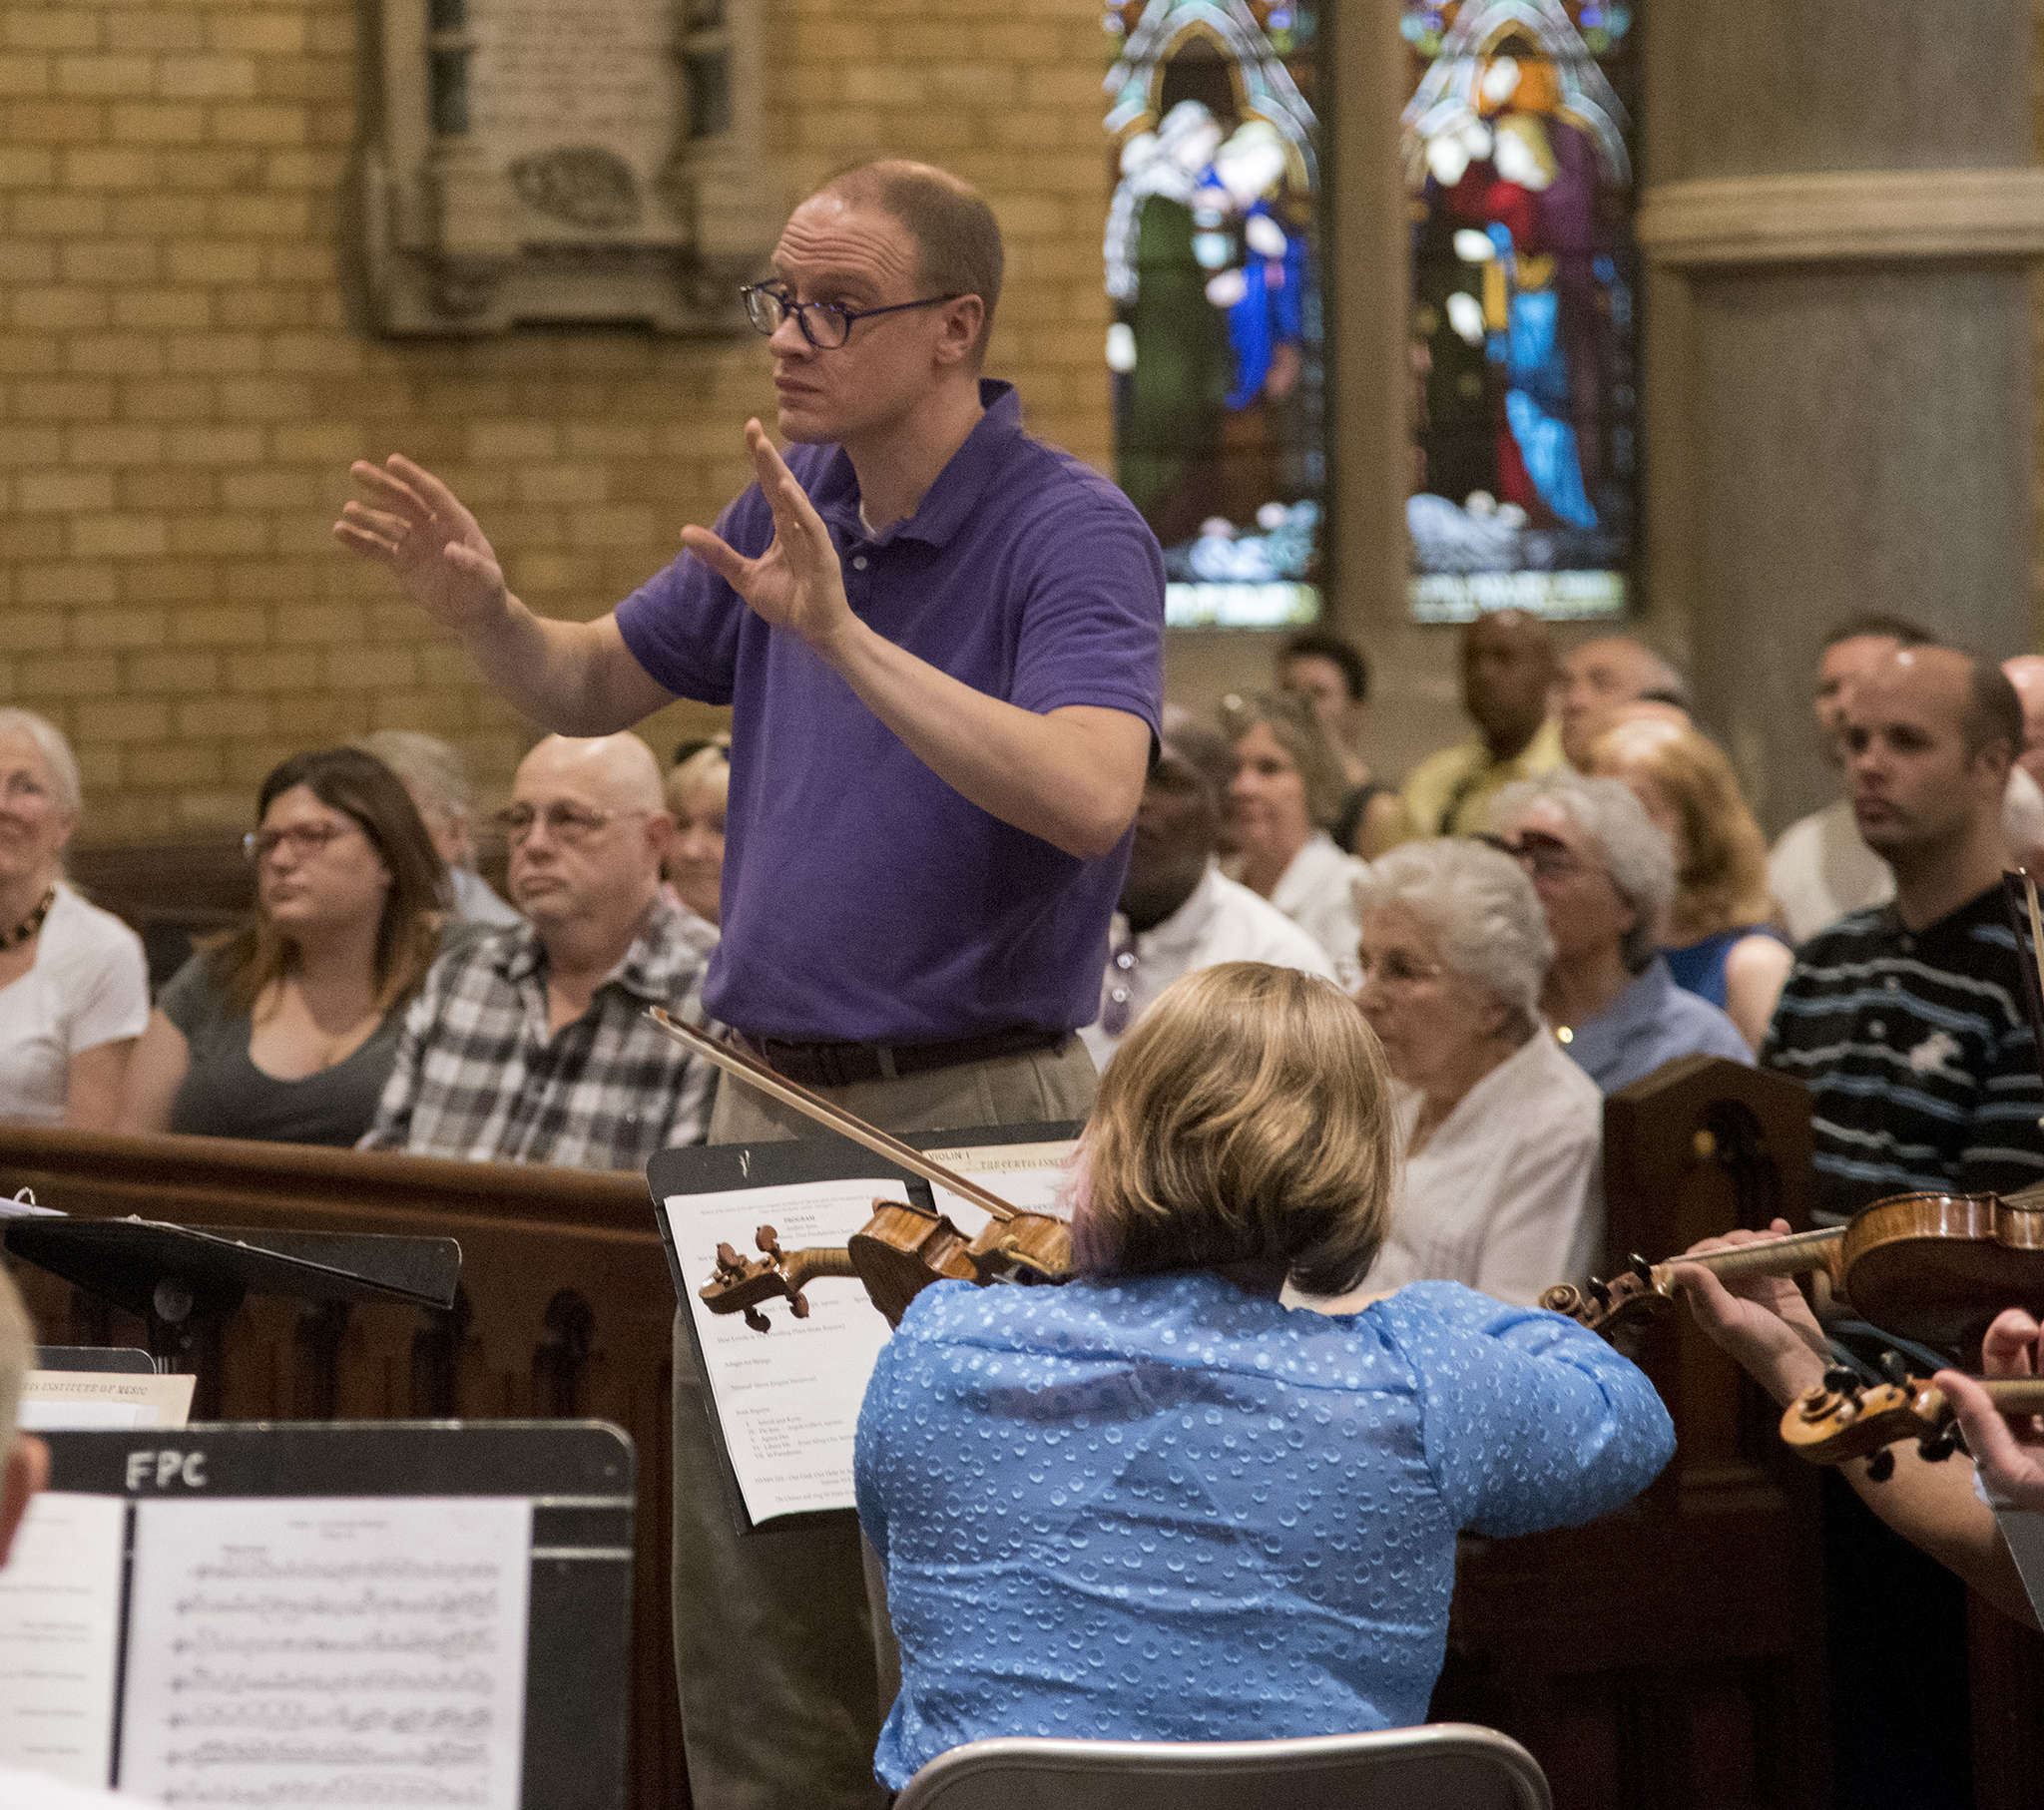 Andrew Senn conducts an antiviolence concert in memory of victims of the Orlando massacre.